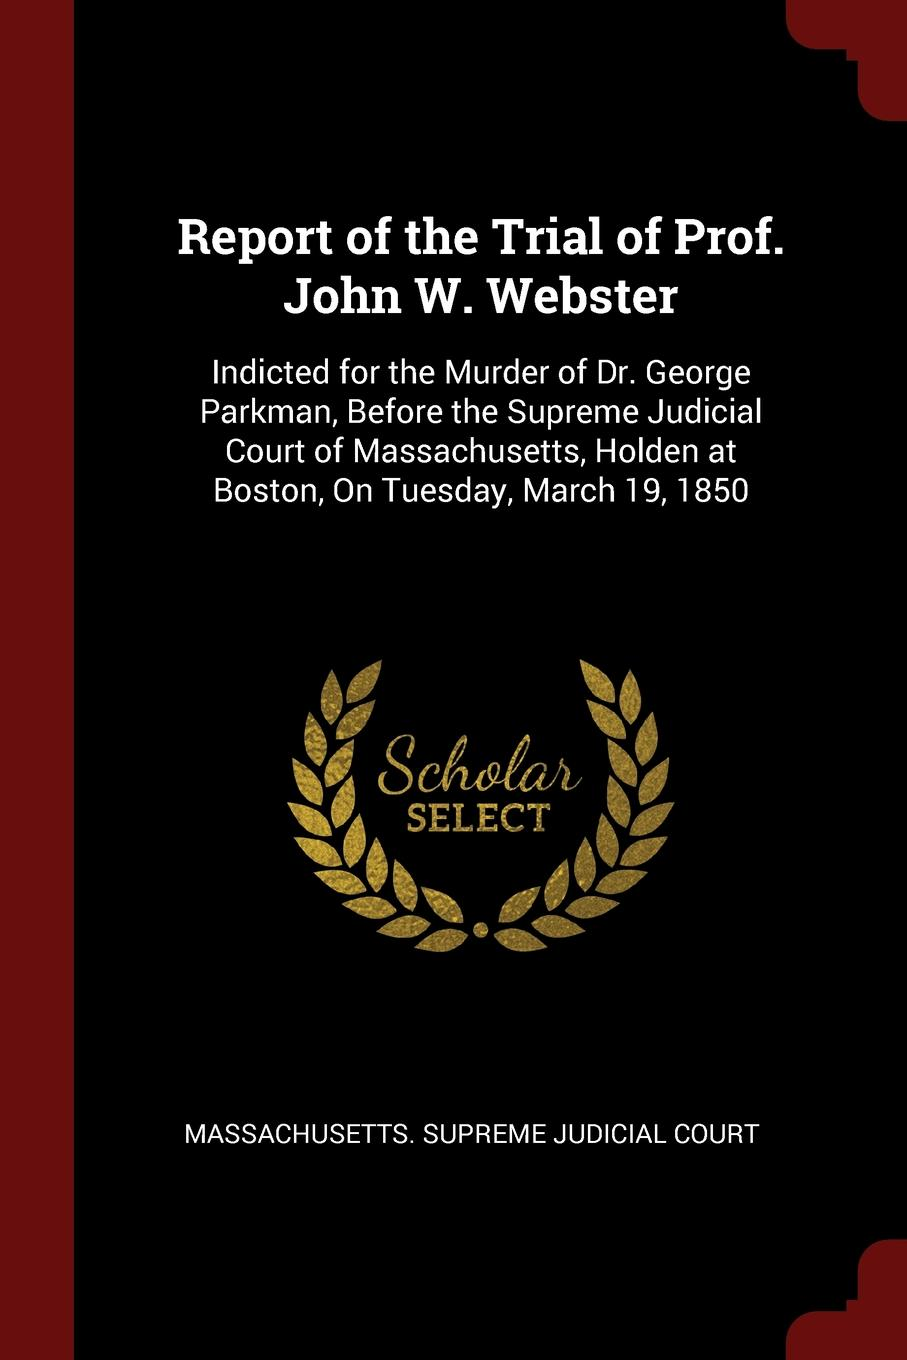 Купить Report of the Trial of Prof. John W. Webster. Indicted for the Murder of Dr. George Parkman, Before the Supreme Judicial Court of Massachusetts, Holden at Boston, On Tuesday, March 19, 1850 на XWAP.SU